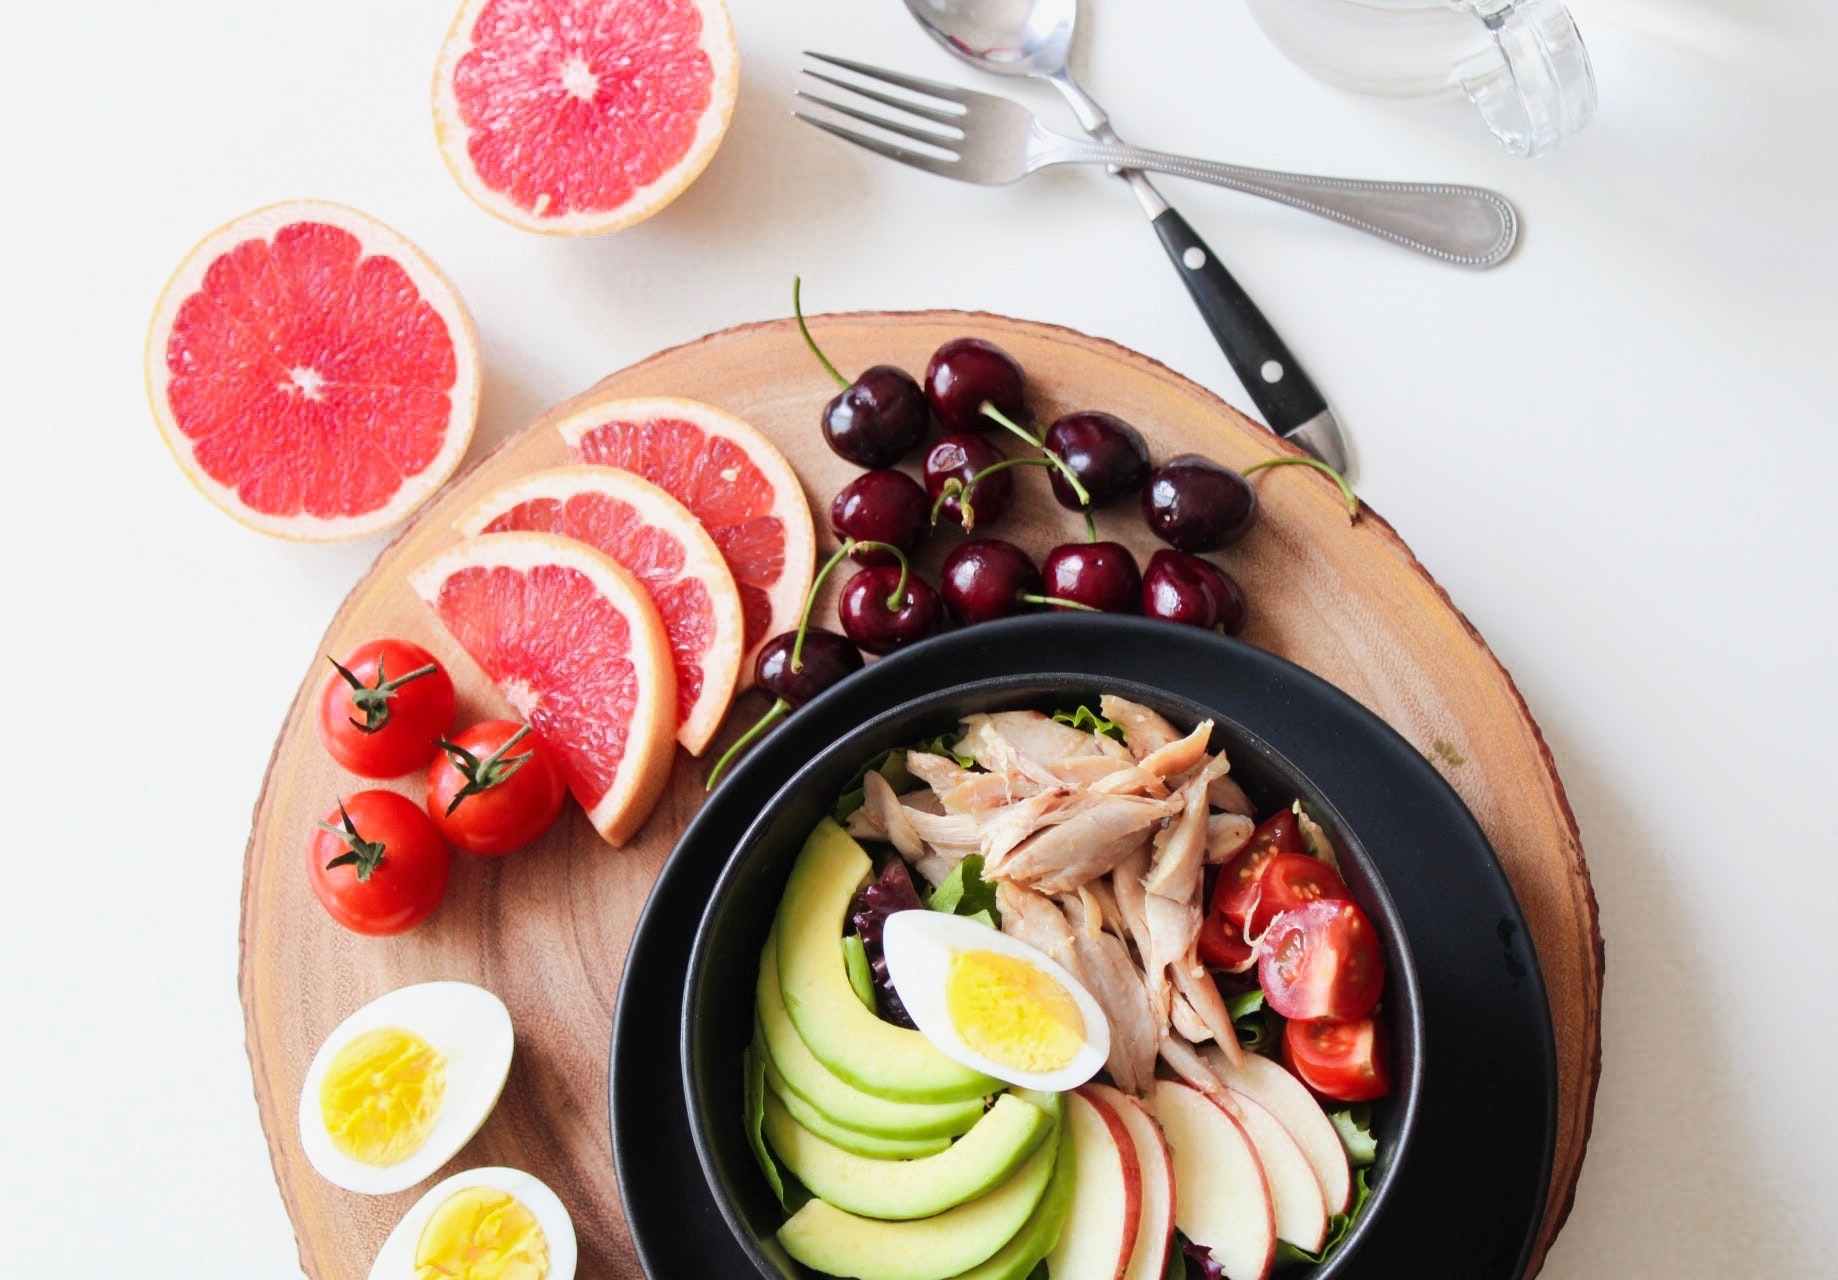 bowl-of-vegetable-salad-and-fruits-936611